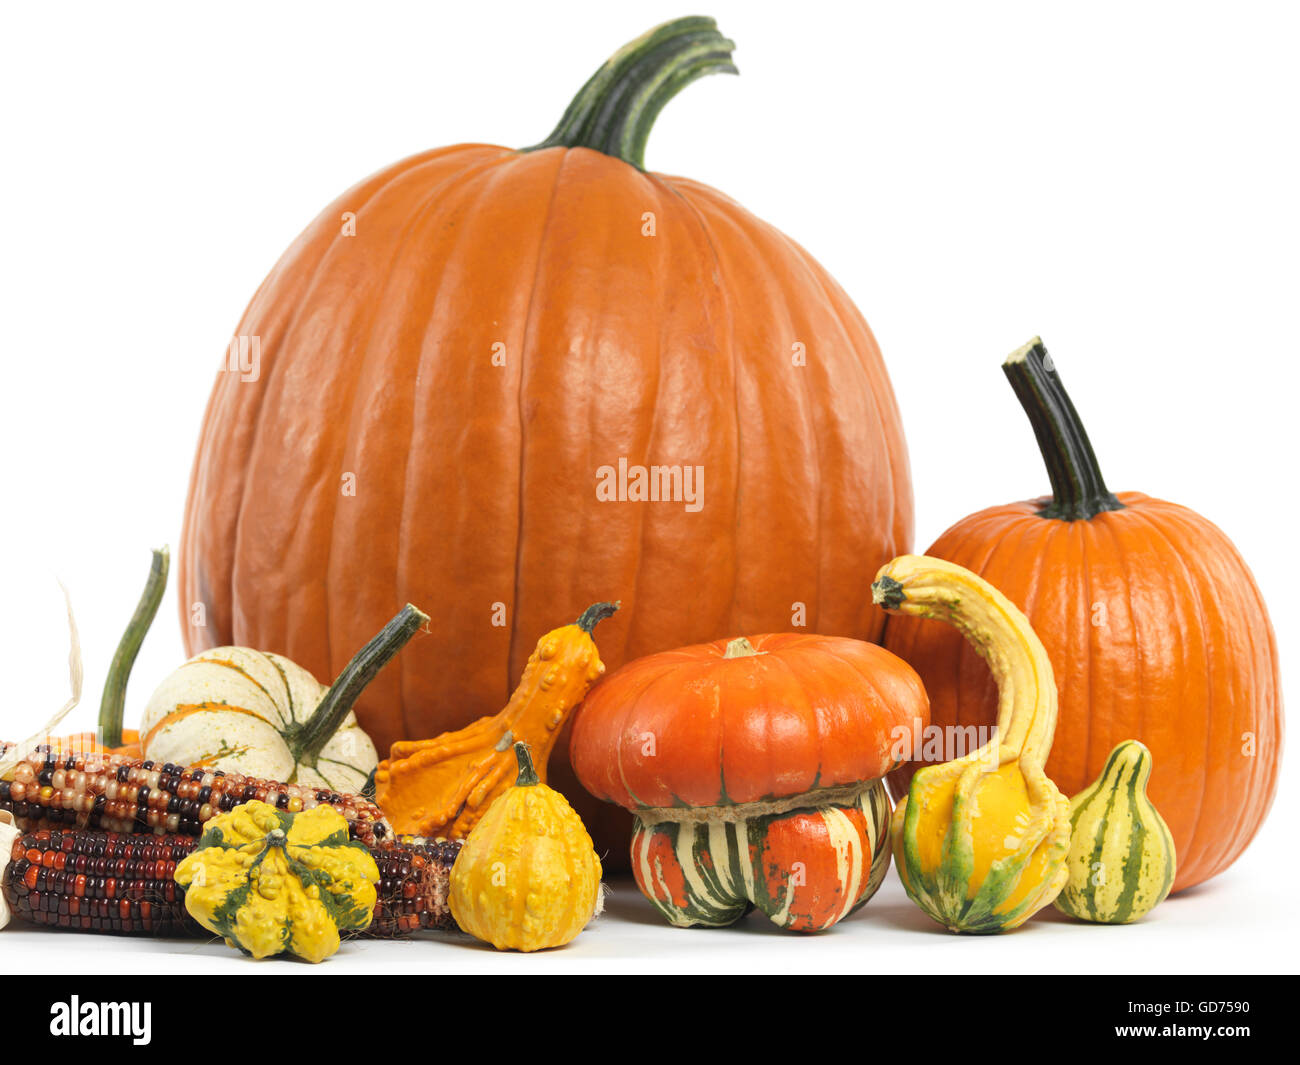 Pumpkins and gourds - Stock Image